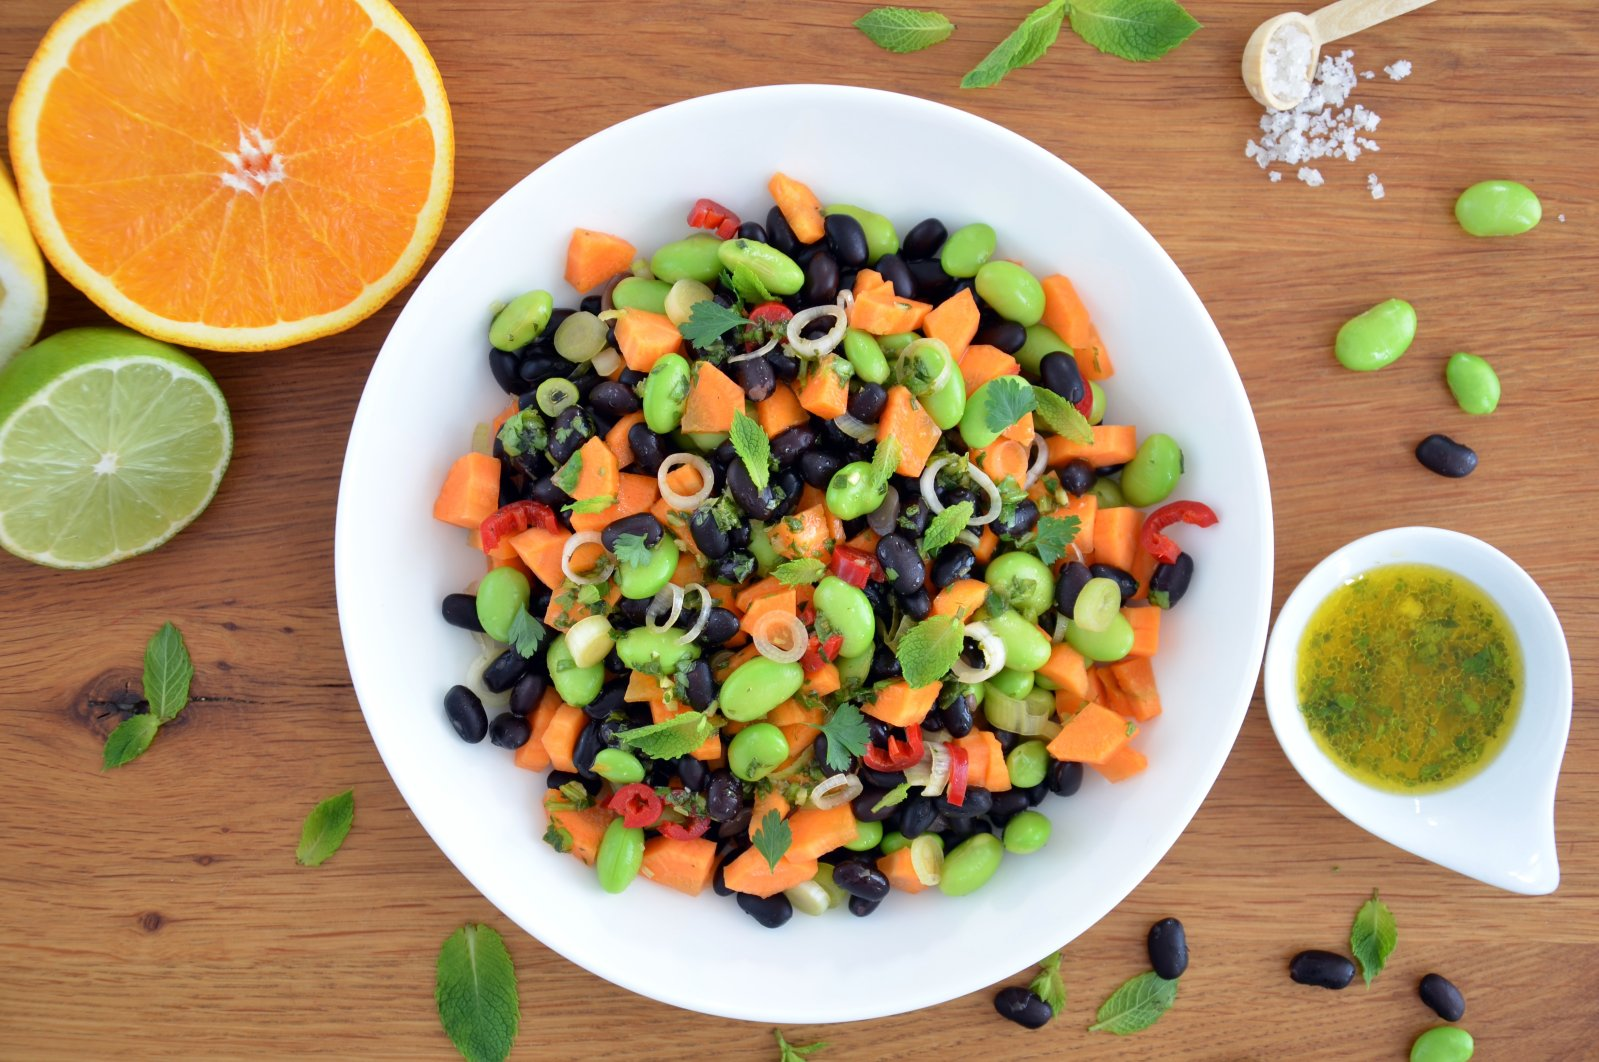 Black beans are guaranteed to make you feel full thanks to all their fibre, and they work well with spices and herbs that will make your tongue happy. (Julia Uehren/loeffelgenuss.de via dpa)